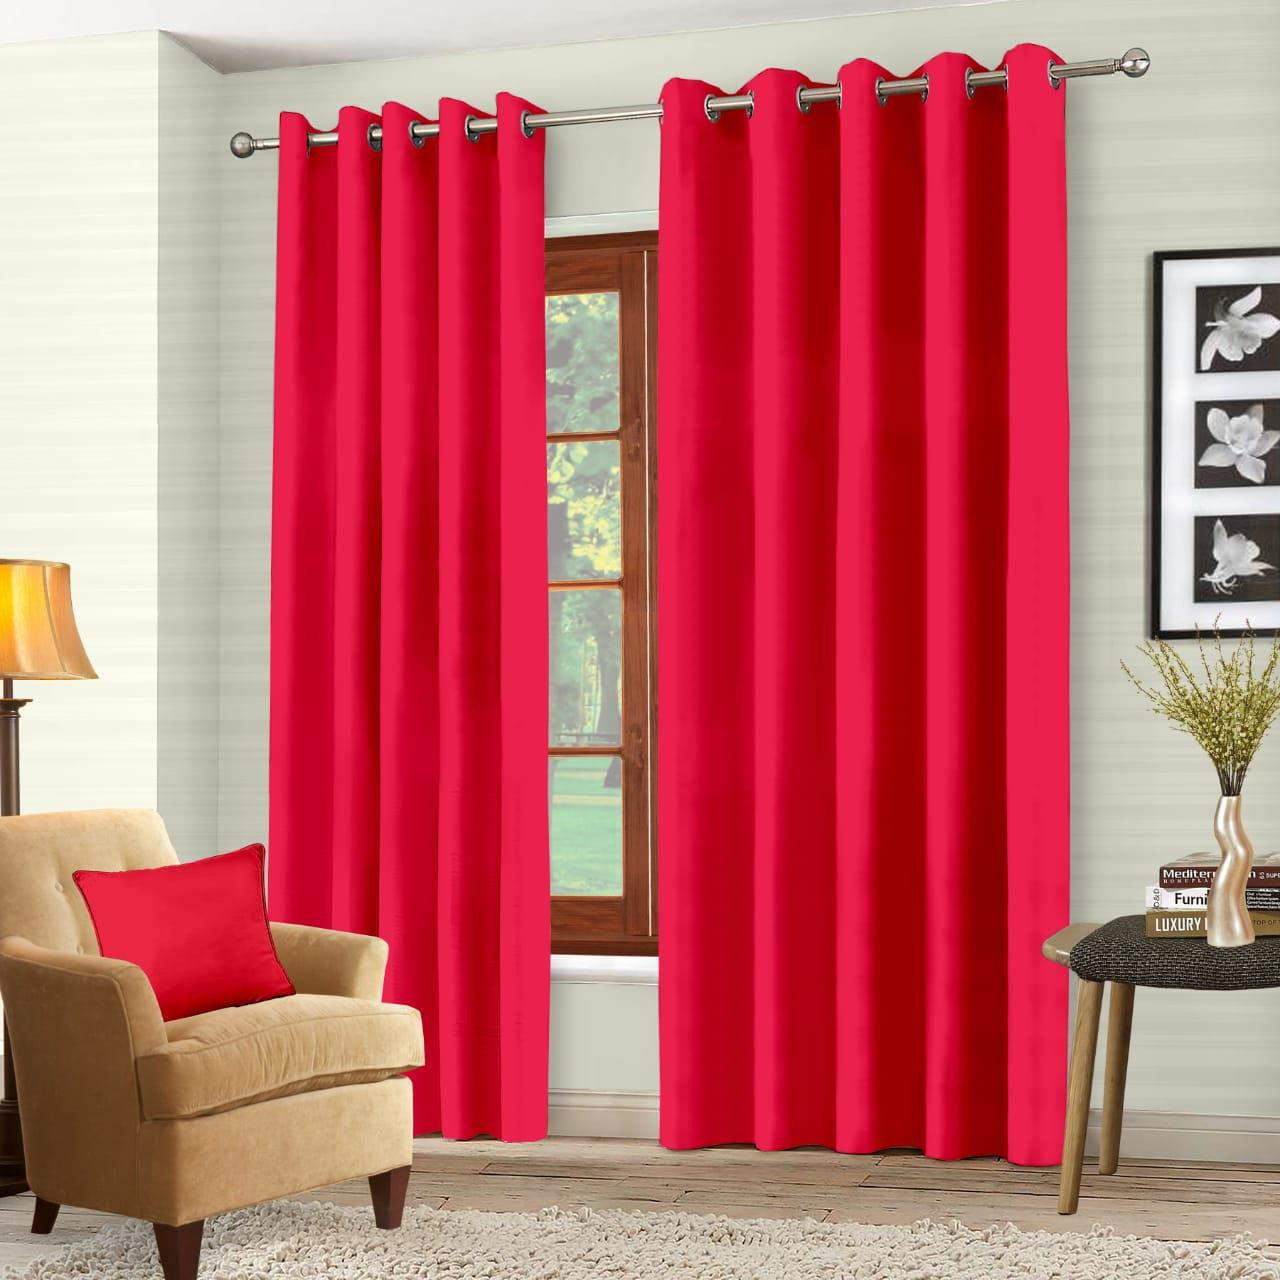 Luxury-Thermal-Blackout-Eyelet-Ring-Top-Curtains-Pair-with-tie-backs thumbnail 34